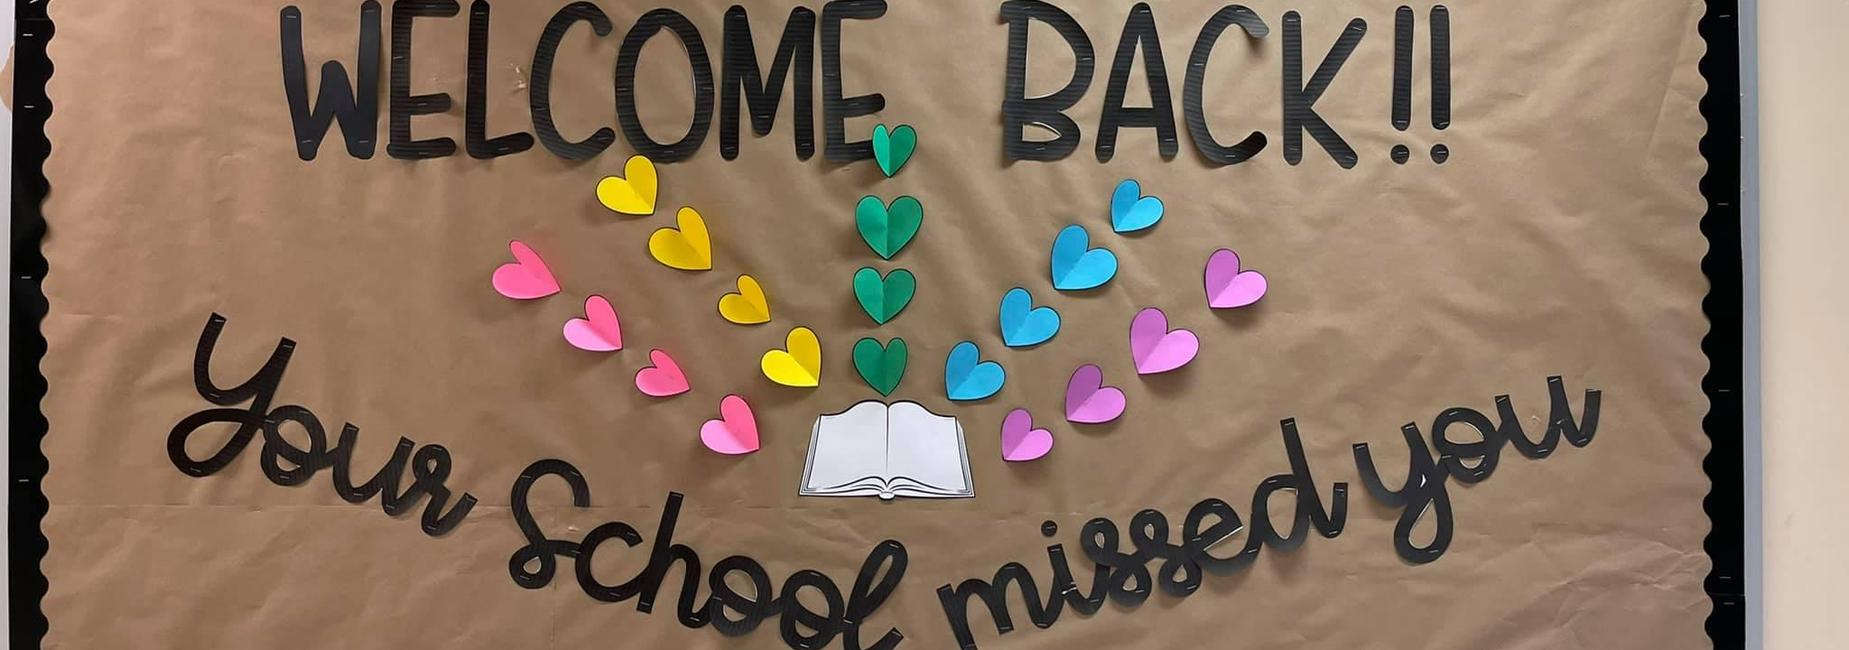 Welcome Back! Your school missed you!